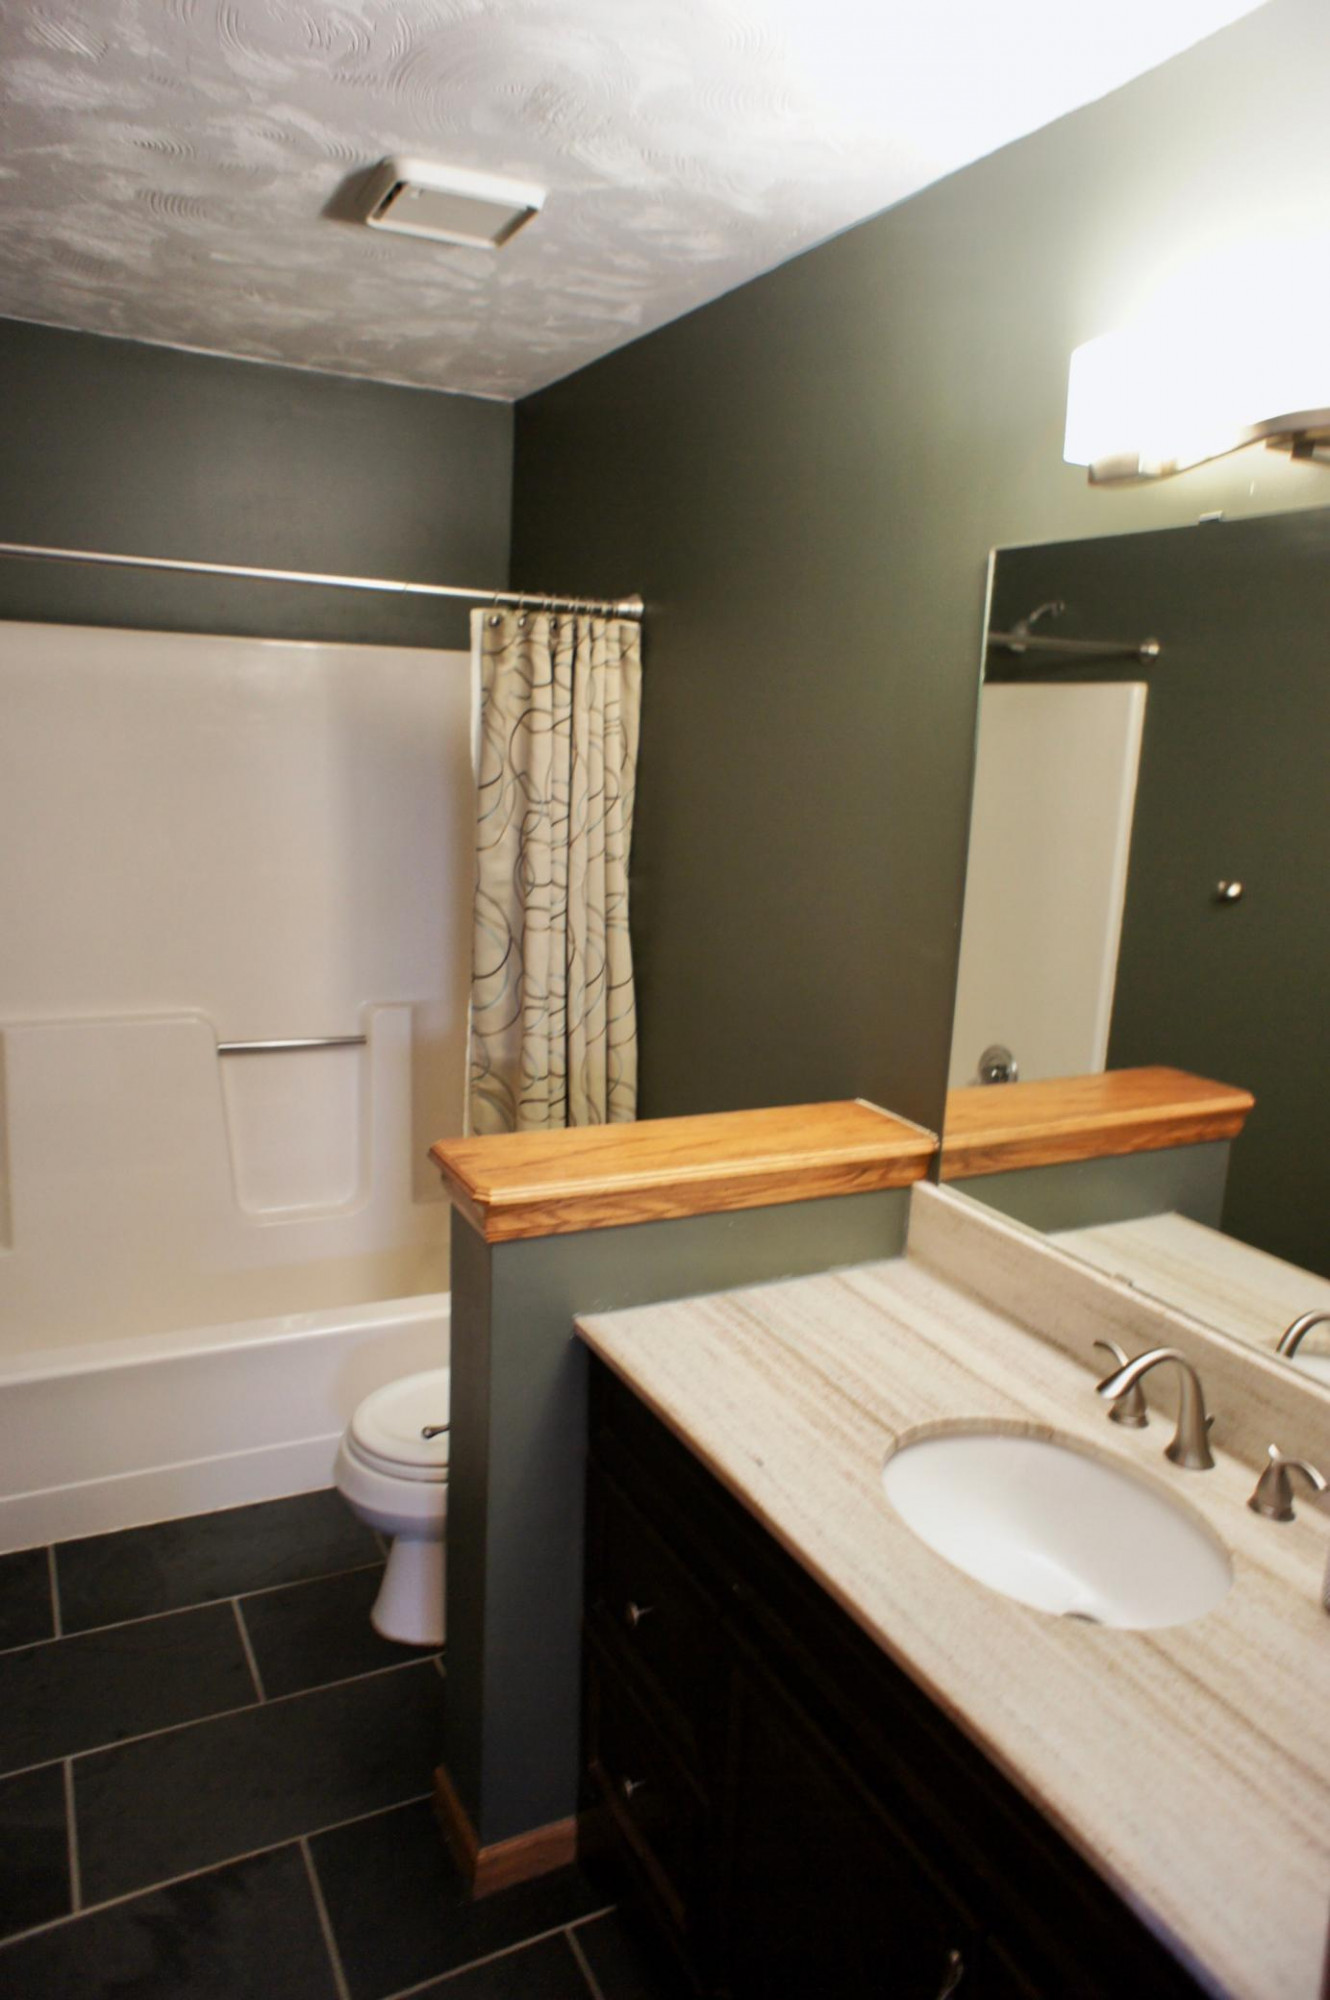 Here's a picture of the full upper level bath